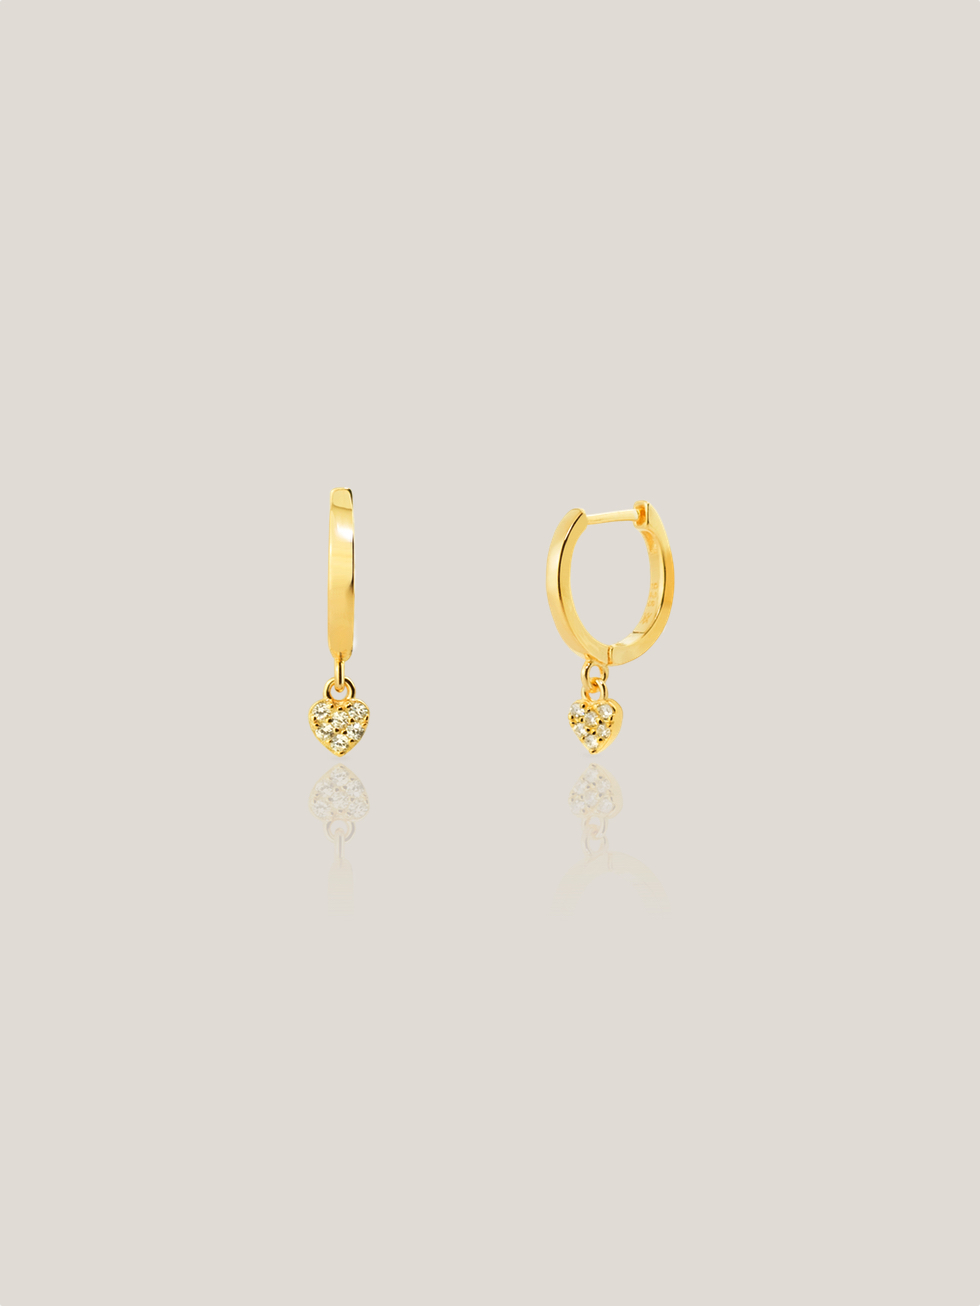 HEART hoops gold earrings